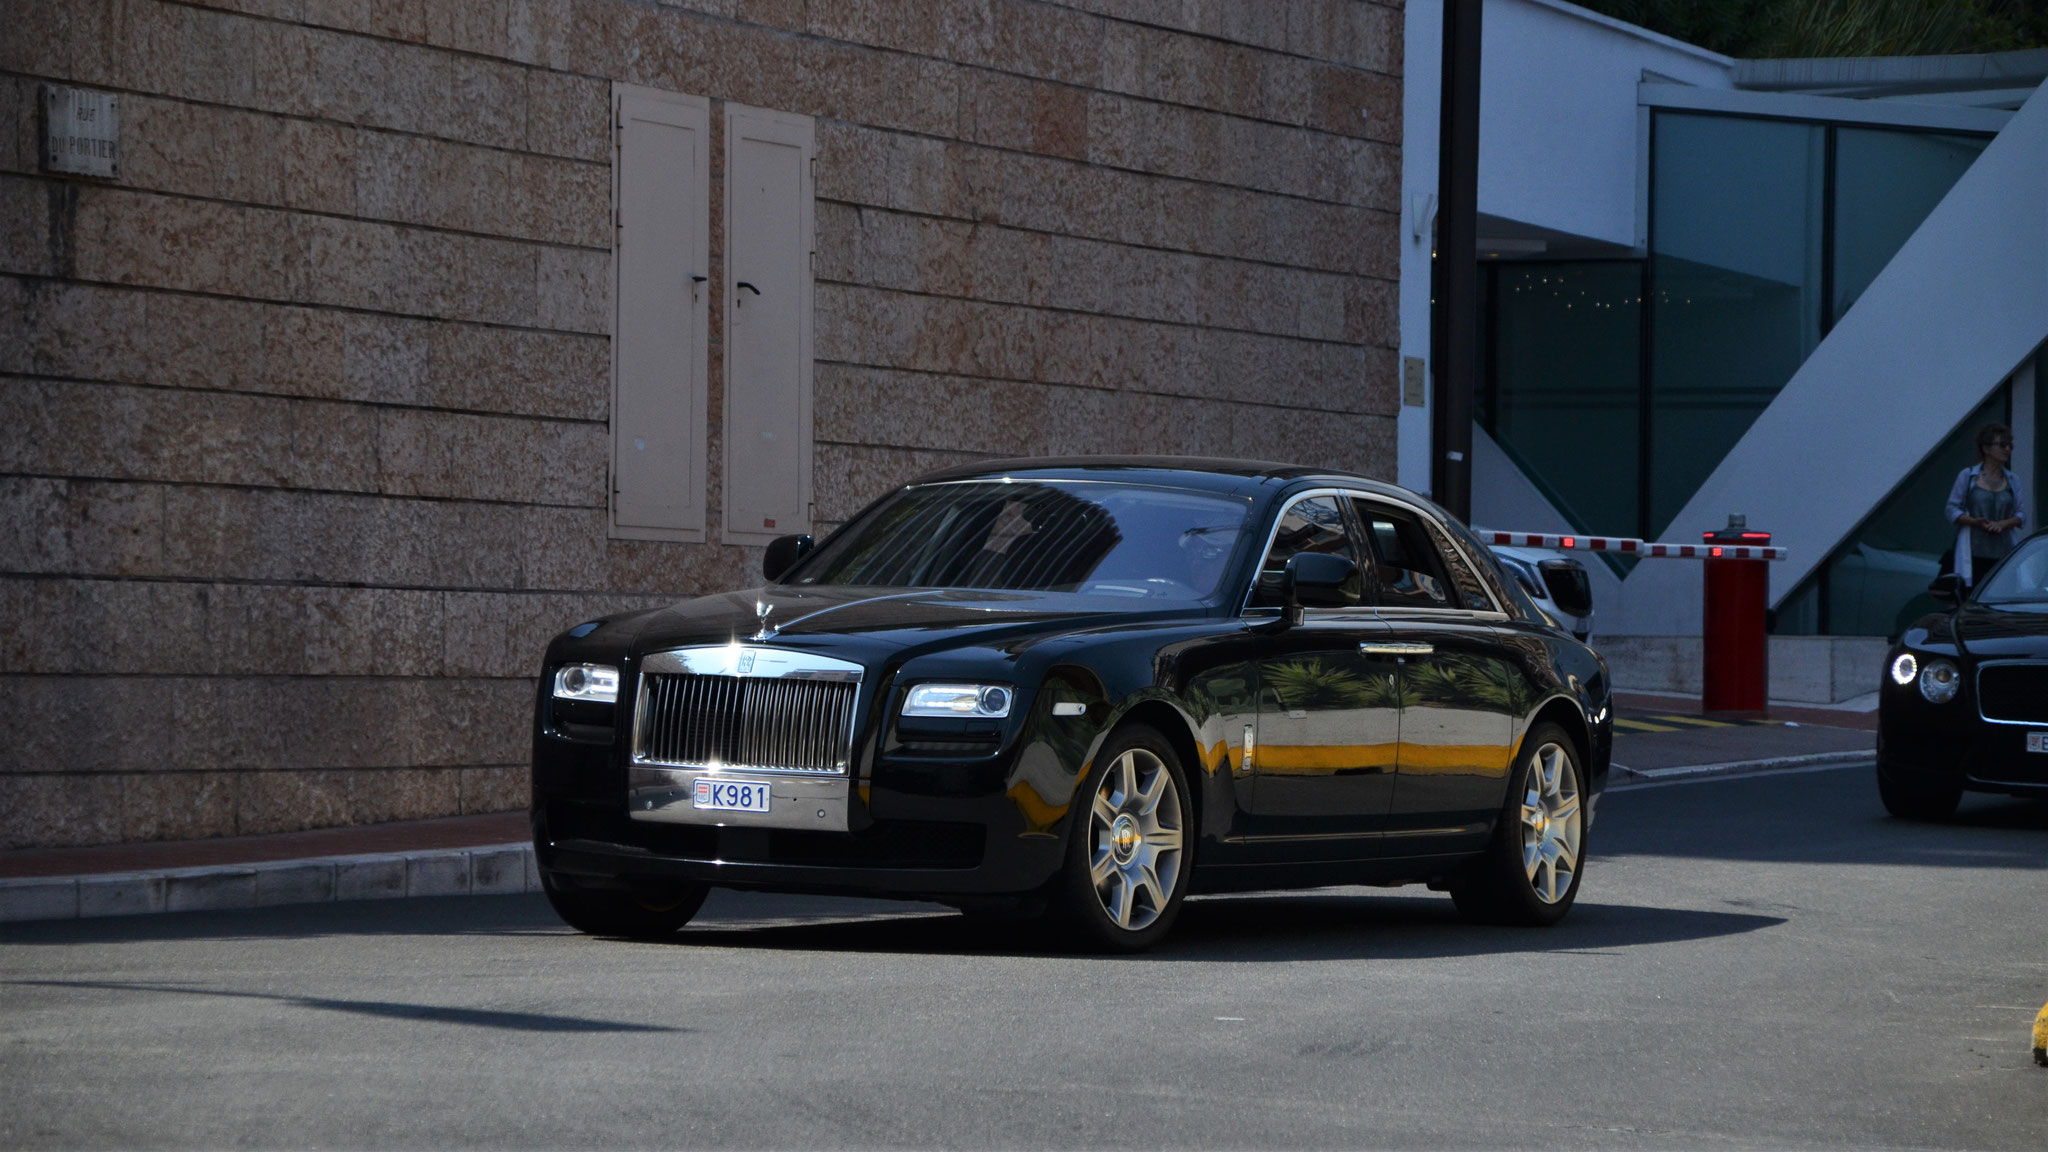 Rolls Royce Ghost - K981 (MC)